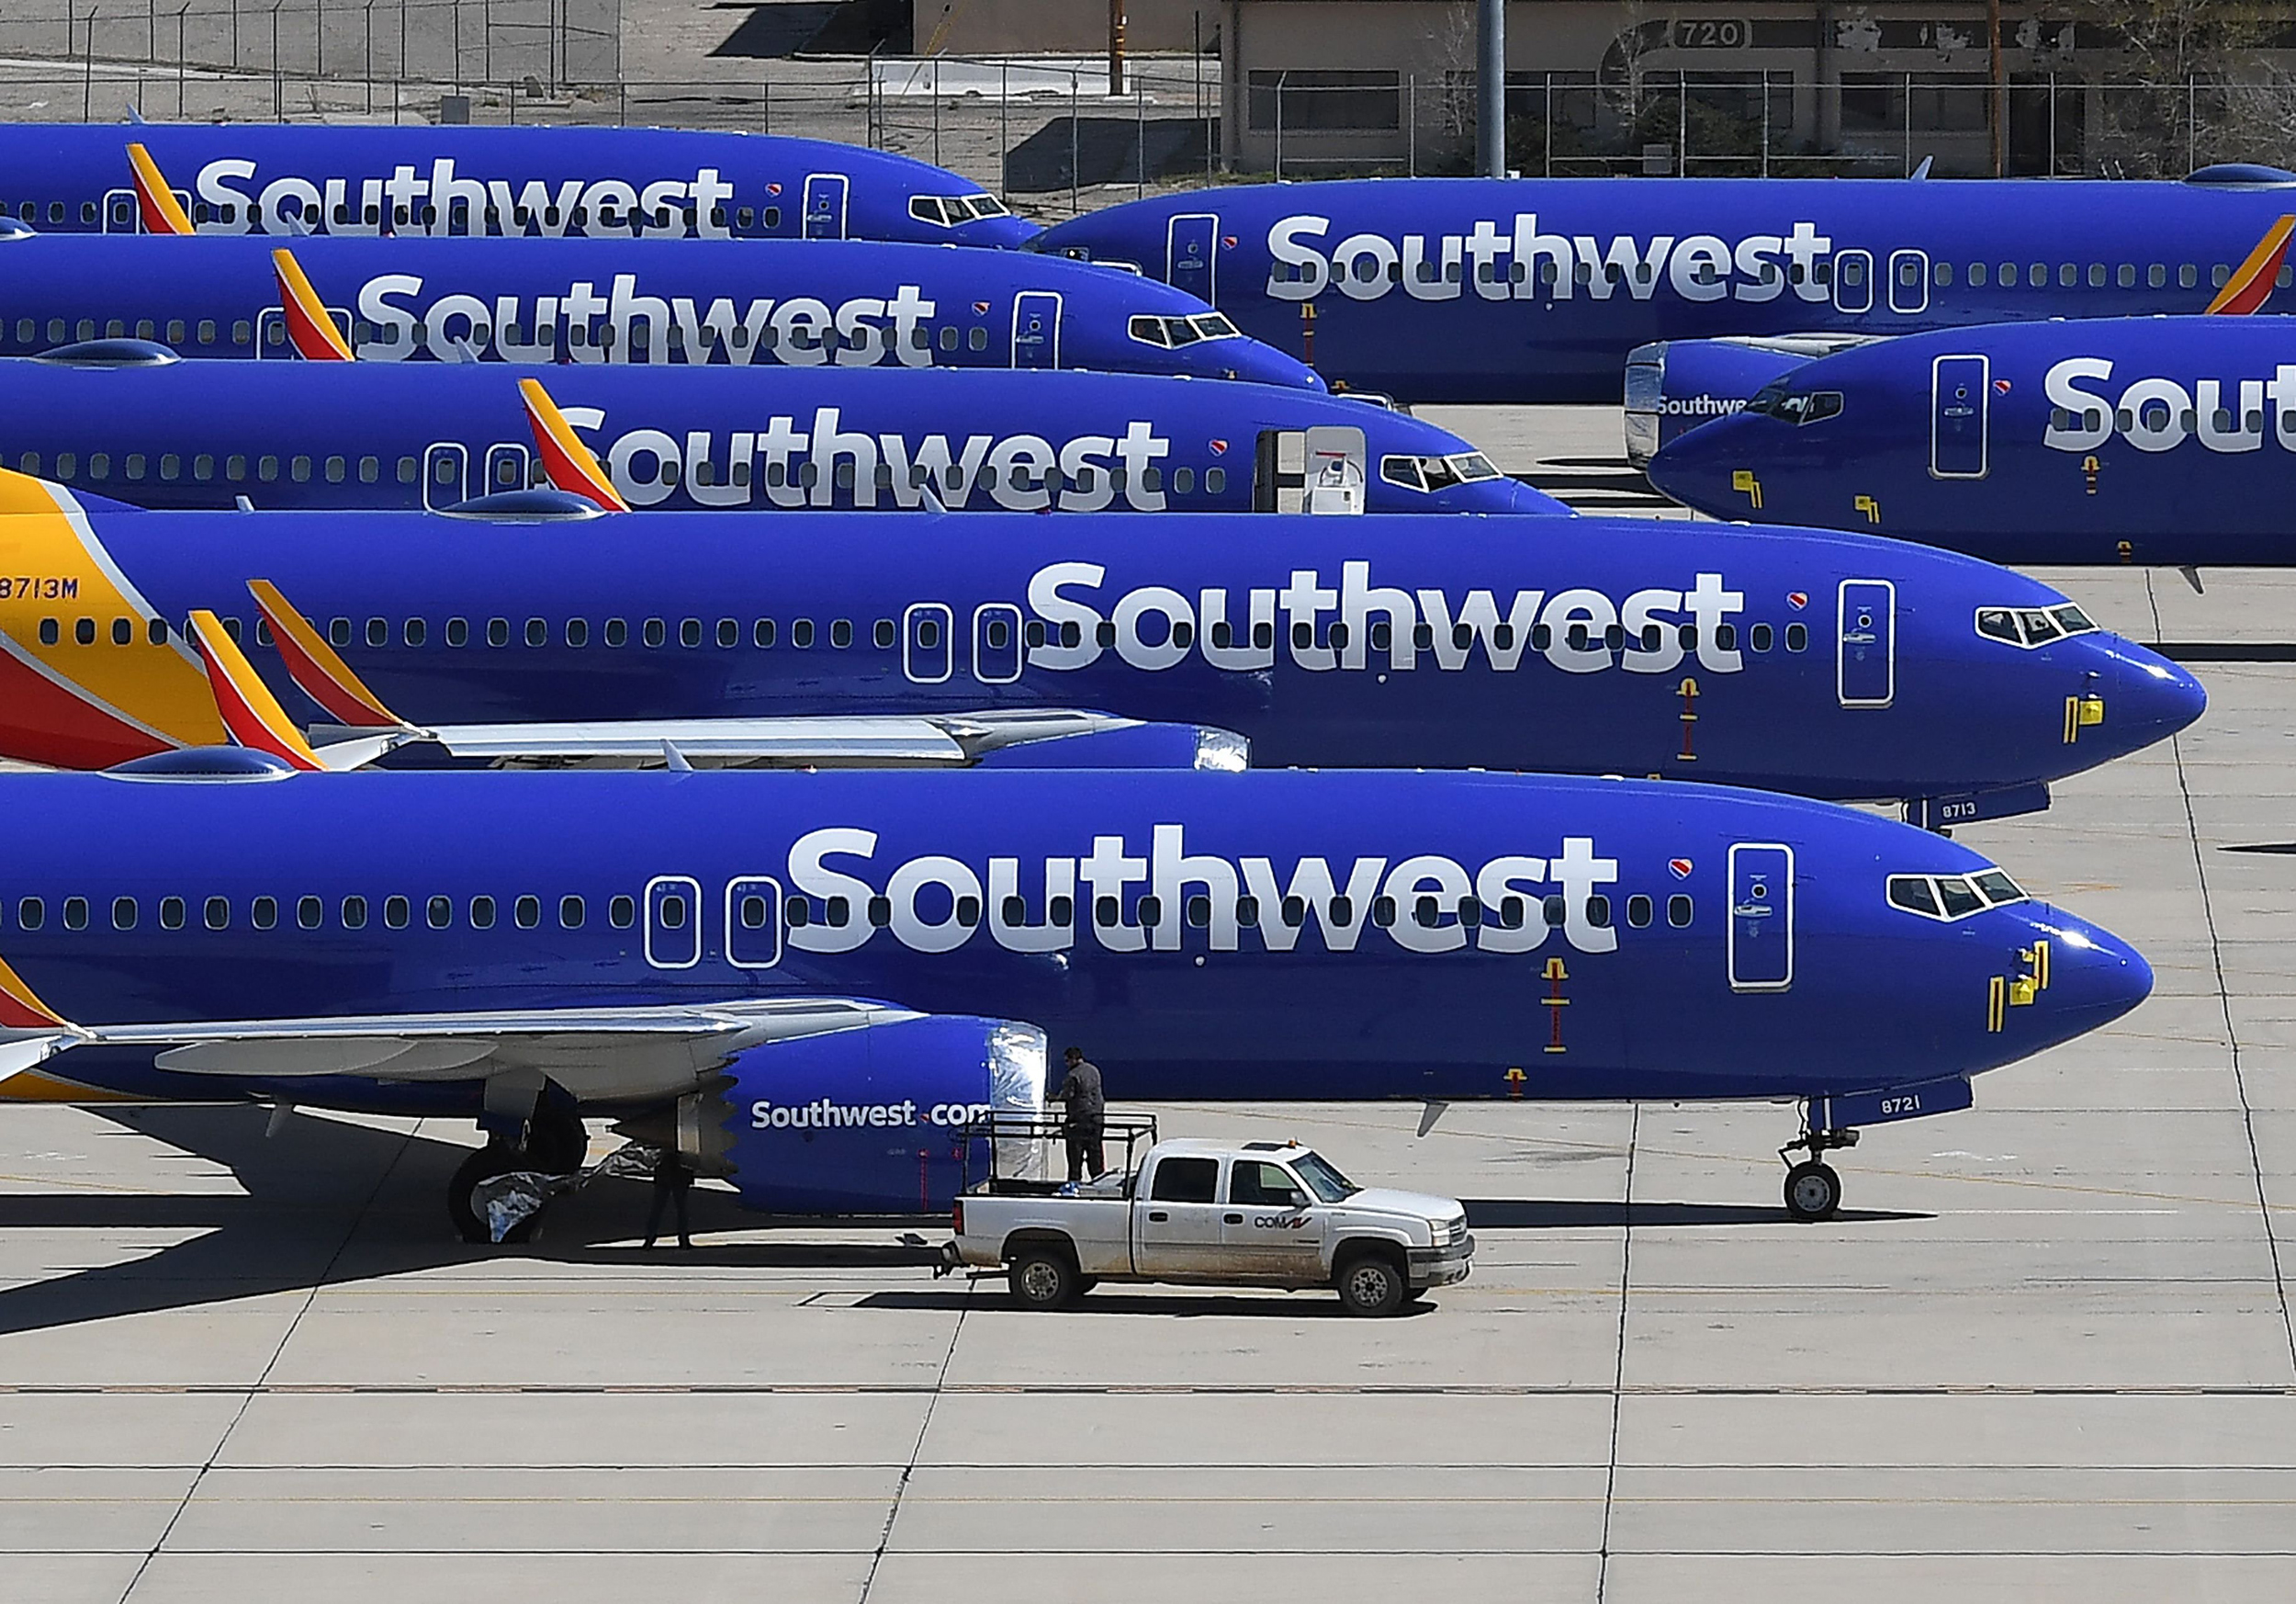 Southwest is latest airline to require Covid vaccinations for workers